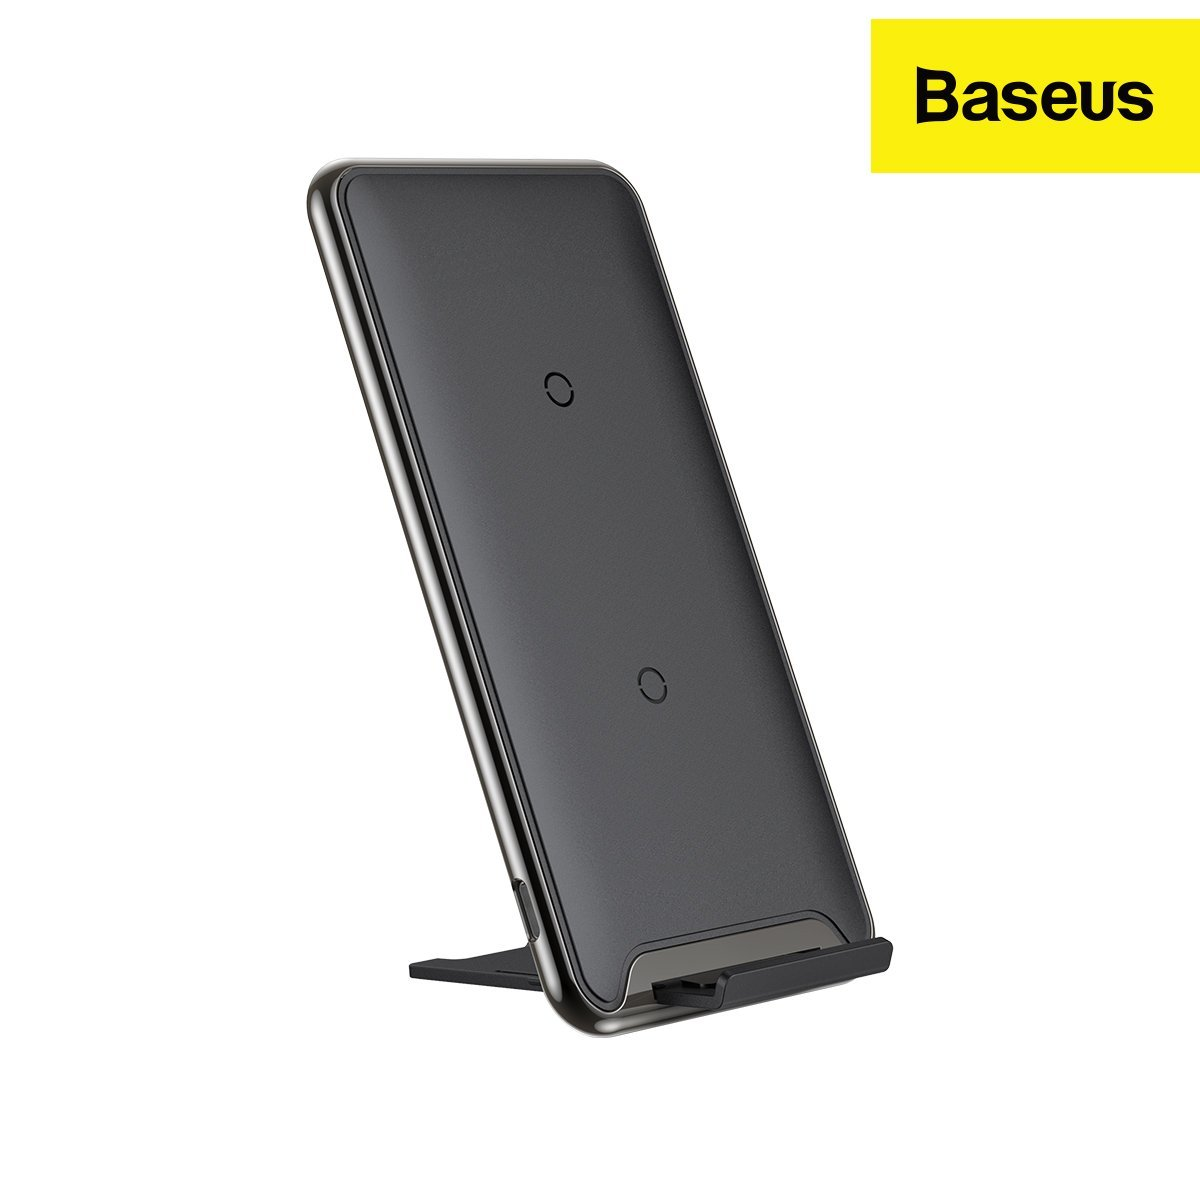 Baseus Triple Coil Qi Wireless Charging Pad I 3 Charging Positions and Phone Stand (10 Watt)